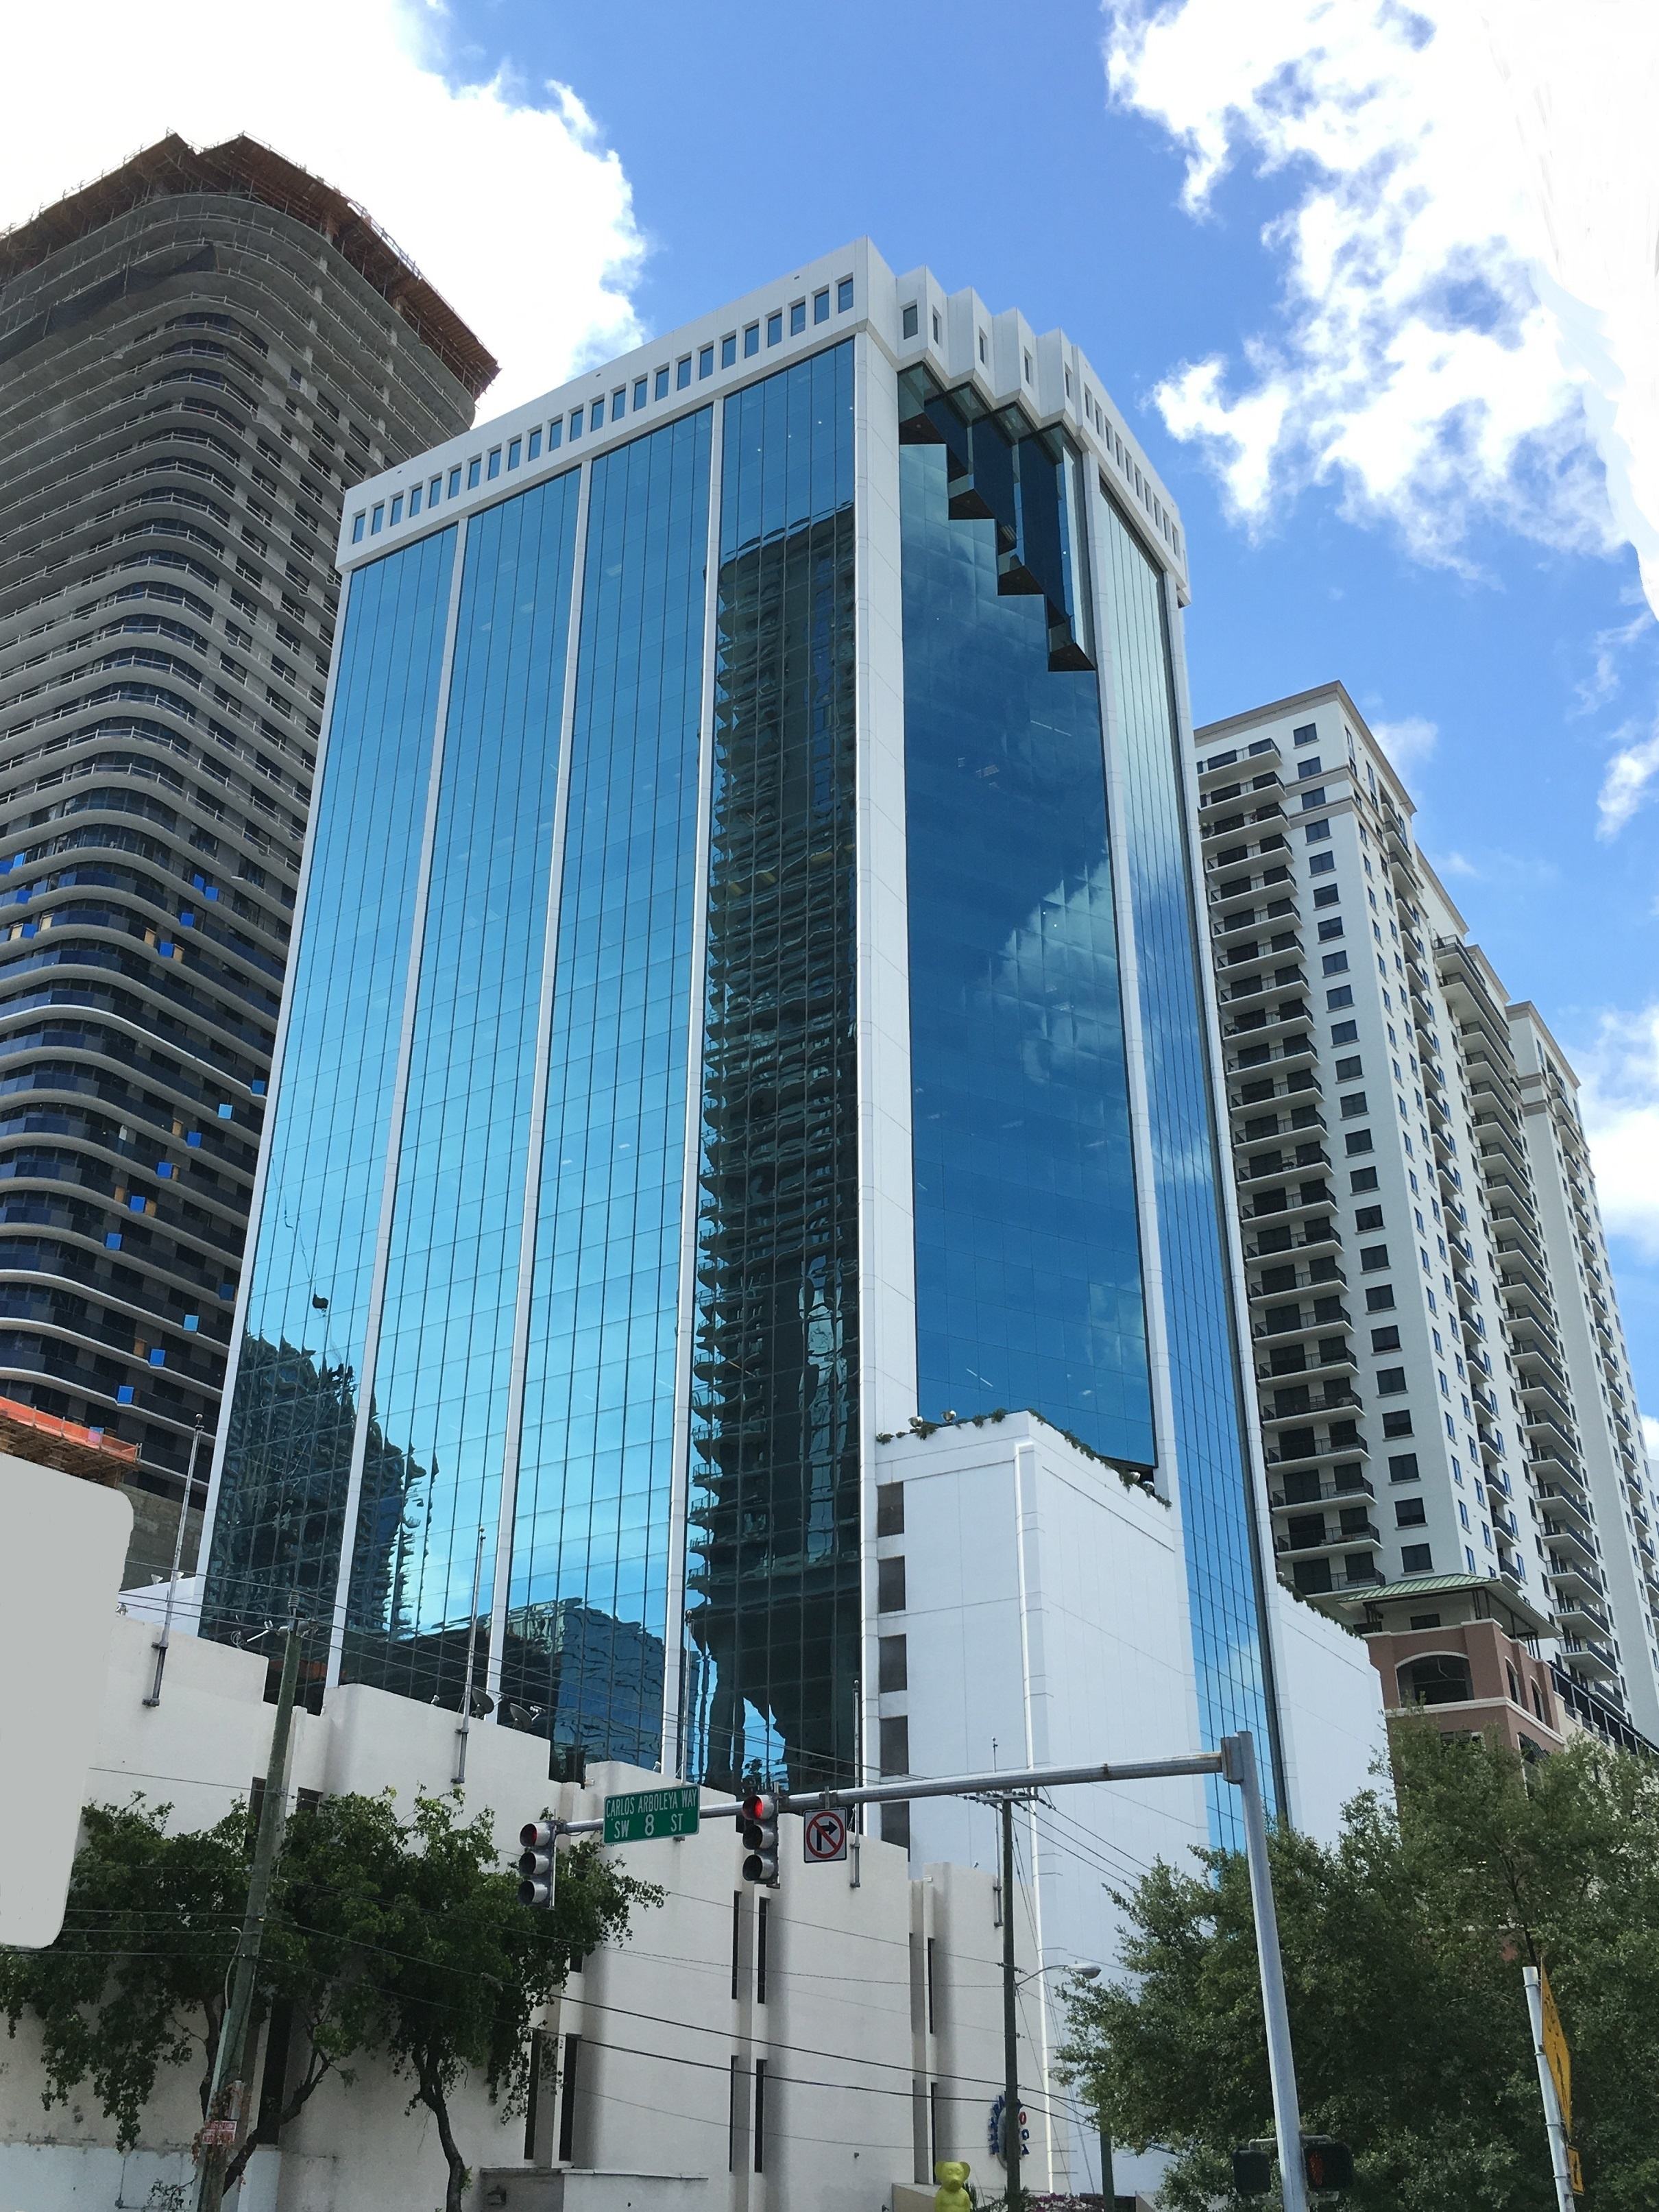 Consulate General of Japan in Miami Brickell City Tower